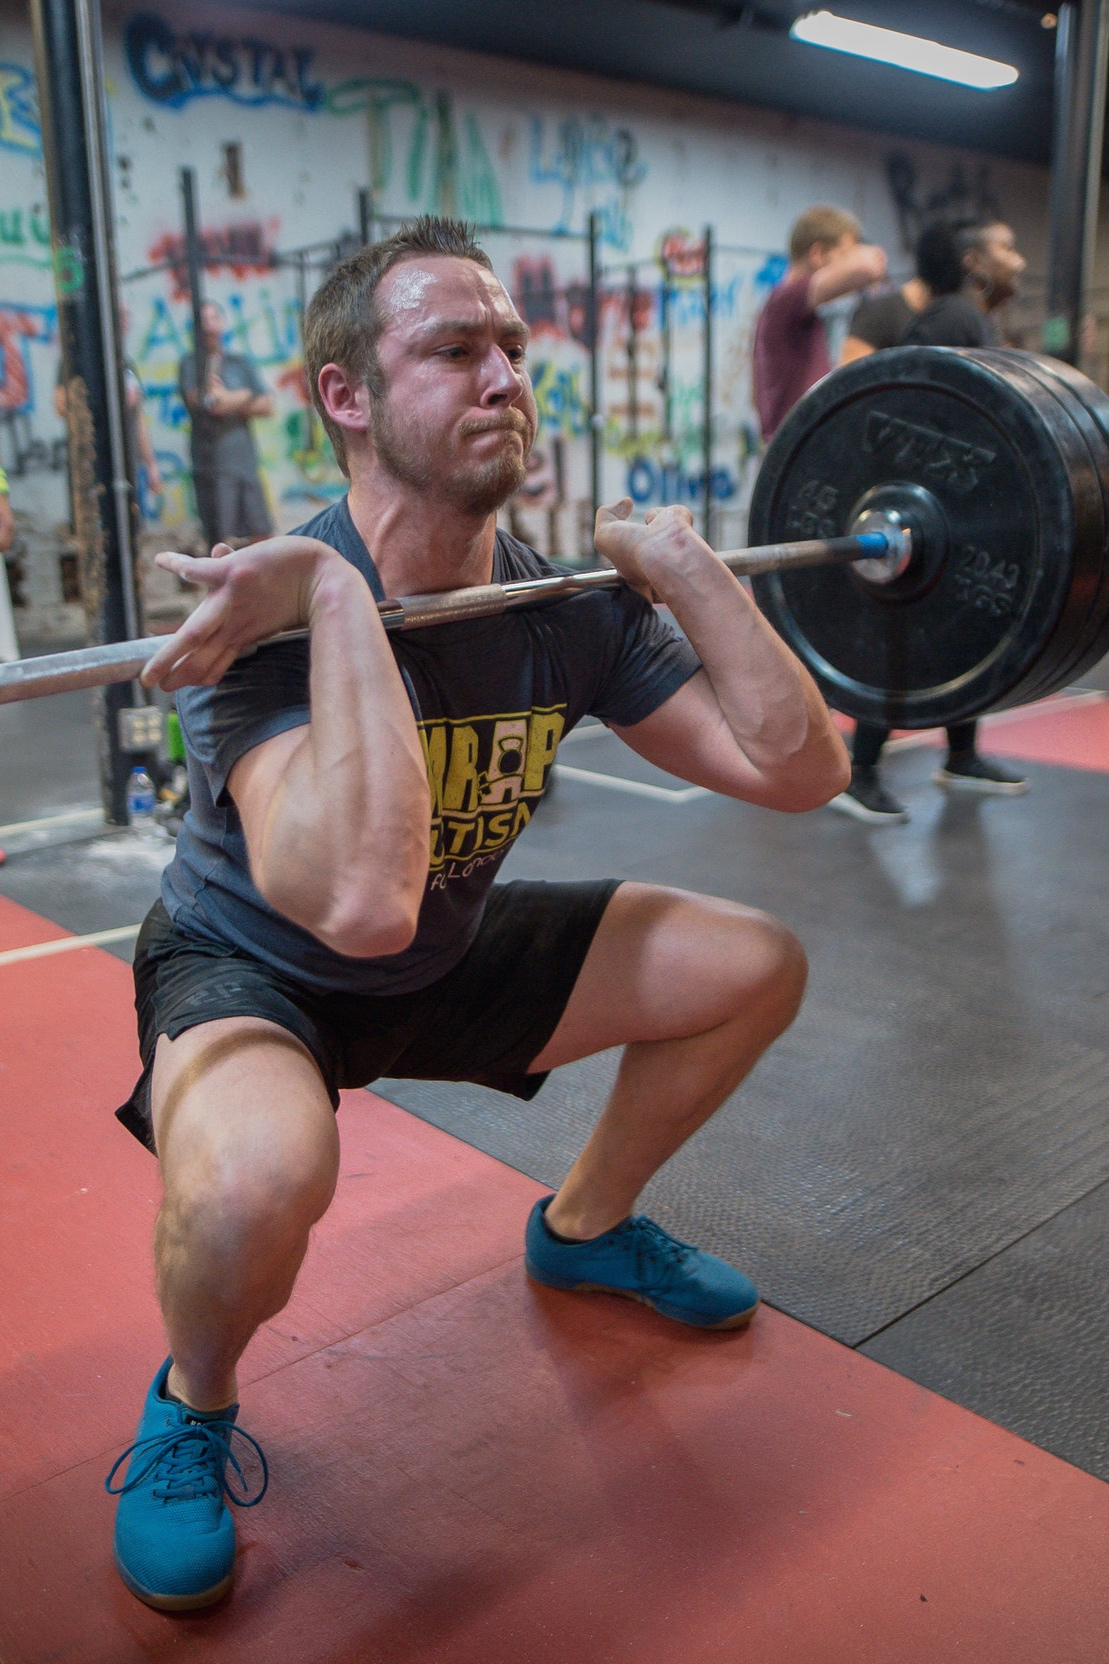 "Matt Blanton, Head Coach    Specializations  CrossFit Level 2 Trainer CrossFit Movement and Mobility OPEX Assessment OPEX Program Design OPEX Business B.S. Exercise Science  Matt started his CrossFit journey in January 2013 at Iron Forged Athletics in Fayetteville, NC. He attended Bob Jones university, graduating with his degree in exercise science in 2011. He has had an amazing opportunity to work at many CrossFit gyms, adding experience and knowledge to his resume. Matt is our head trainer at CrossFit S3 and works hard to ensure safe, progressive, and efficient programming to our members. You will always see him moving around in class and giving advice to members on how to move better and smarter. Matt loves CrossFit, but his love for Christ is the most important thing in his life. ""I strive to live my life the best I can for Him everyday and give Him the glory He deserves."""